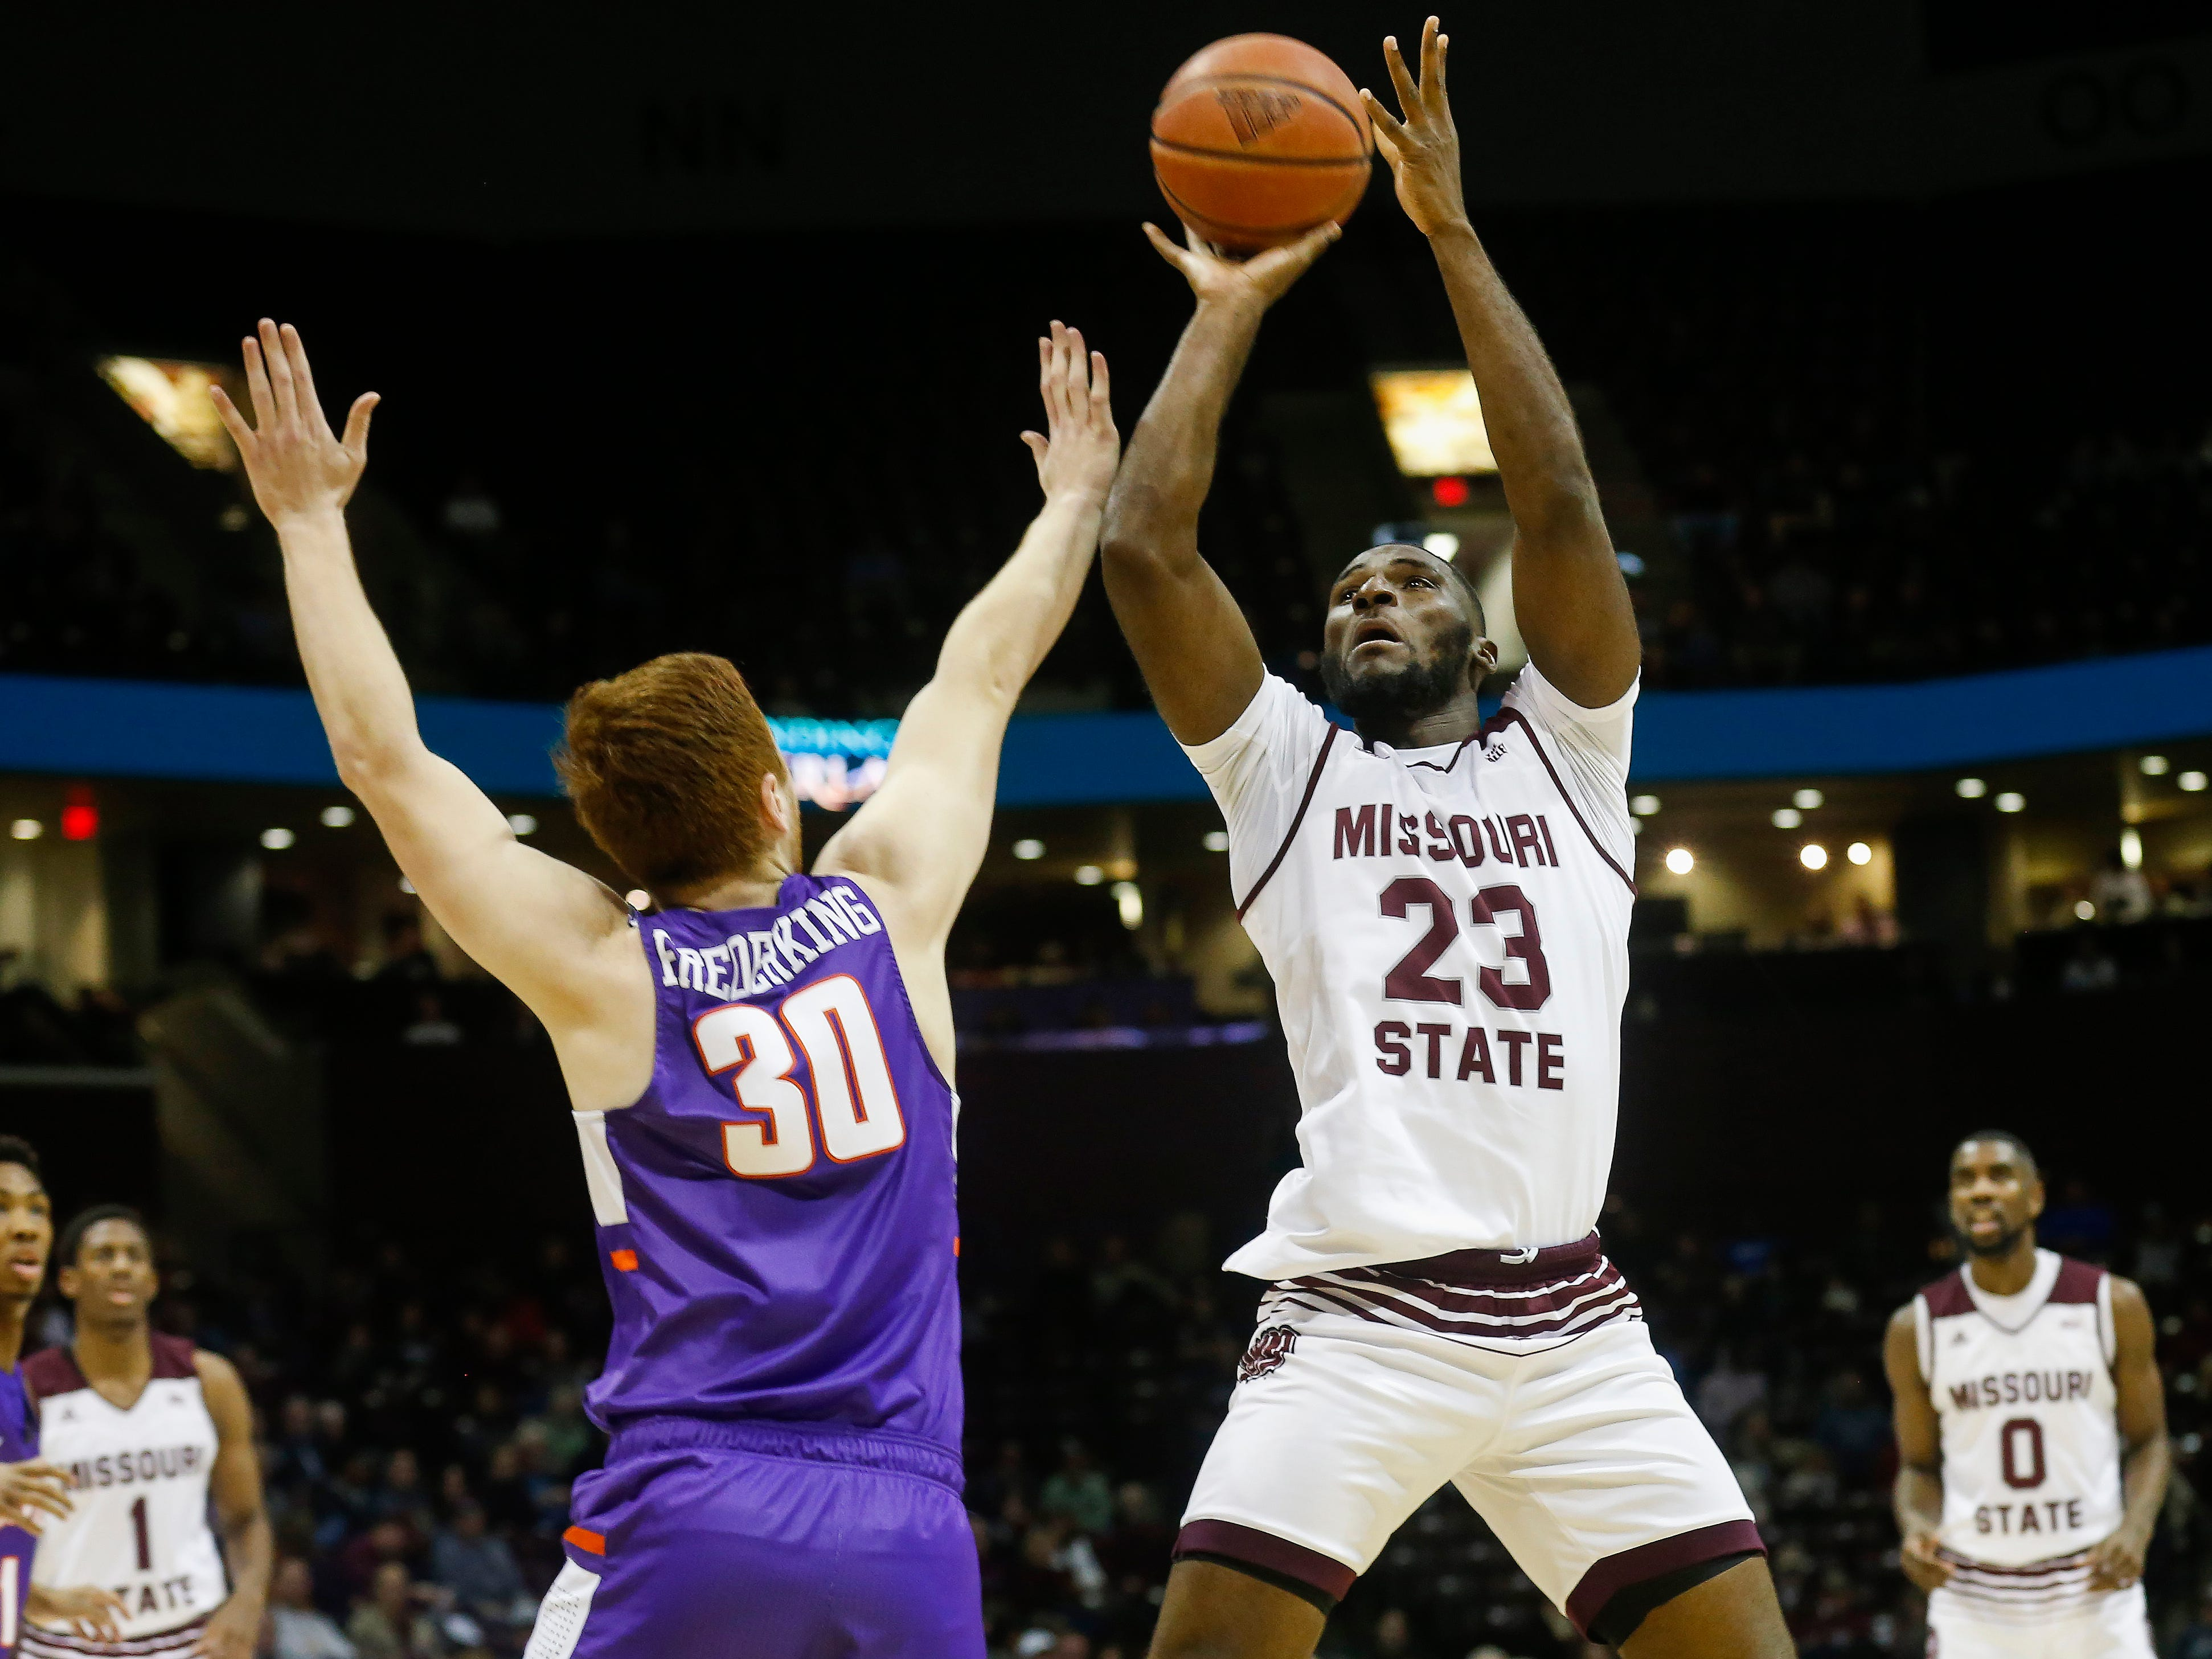 The Missouri State Bears took on the Evansville Purple Aces at JQH Arena on Wednesday, Jan. 16, 2019.